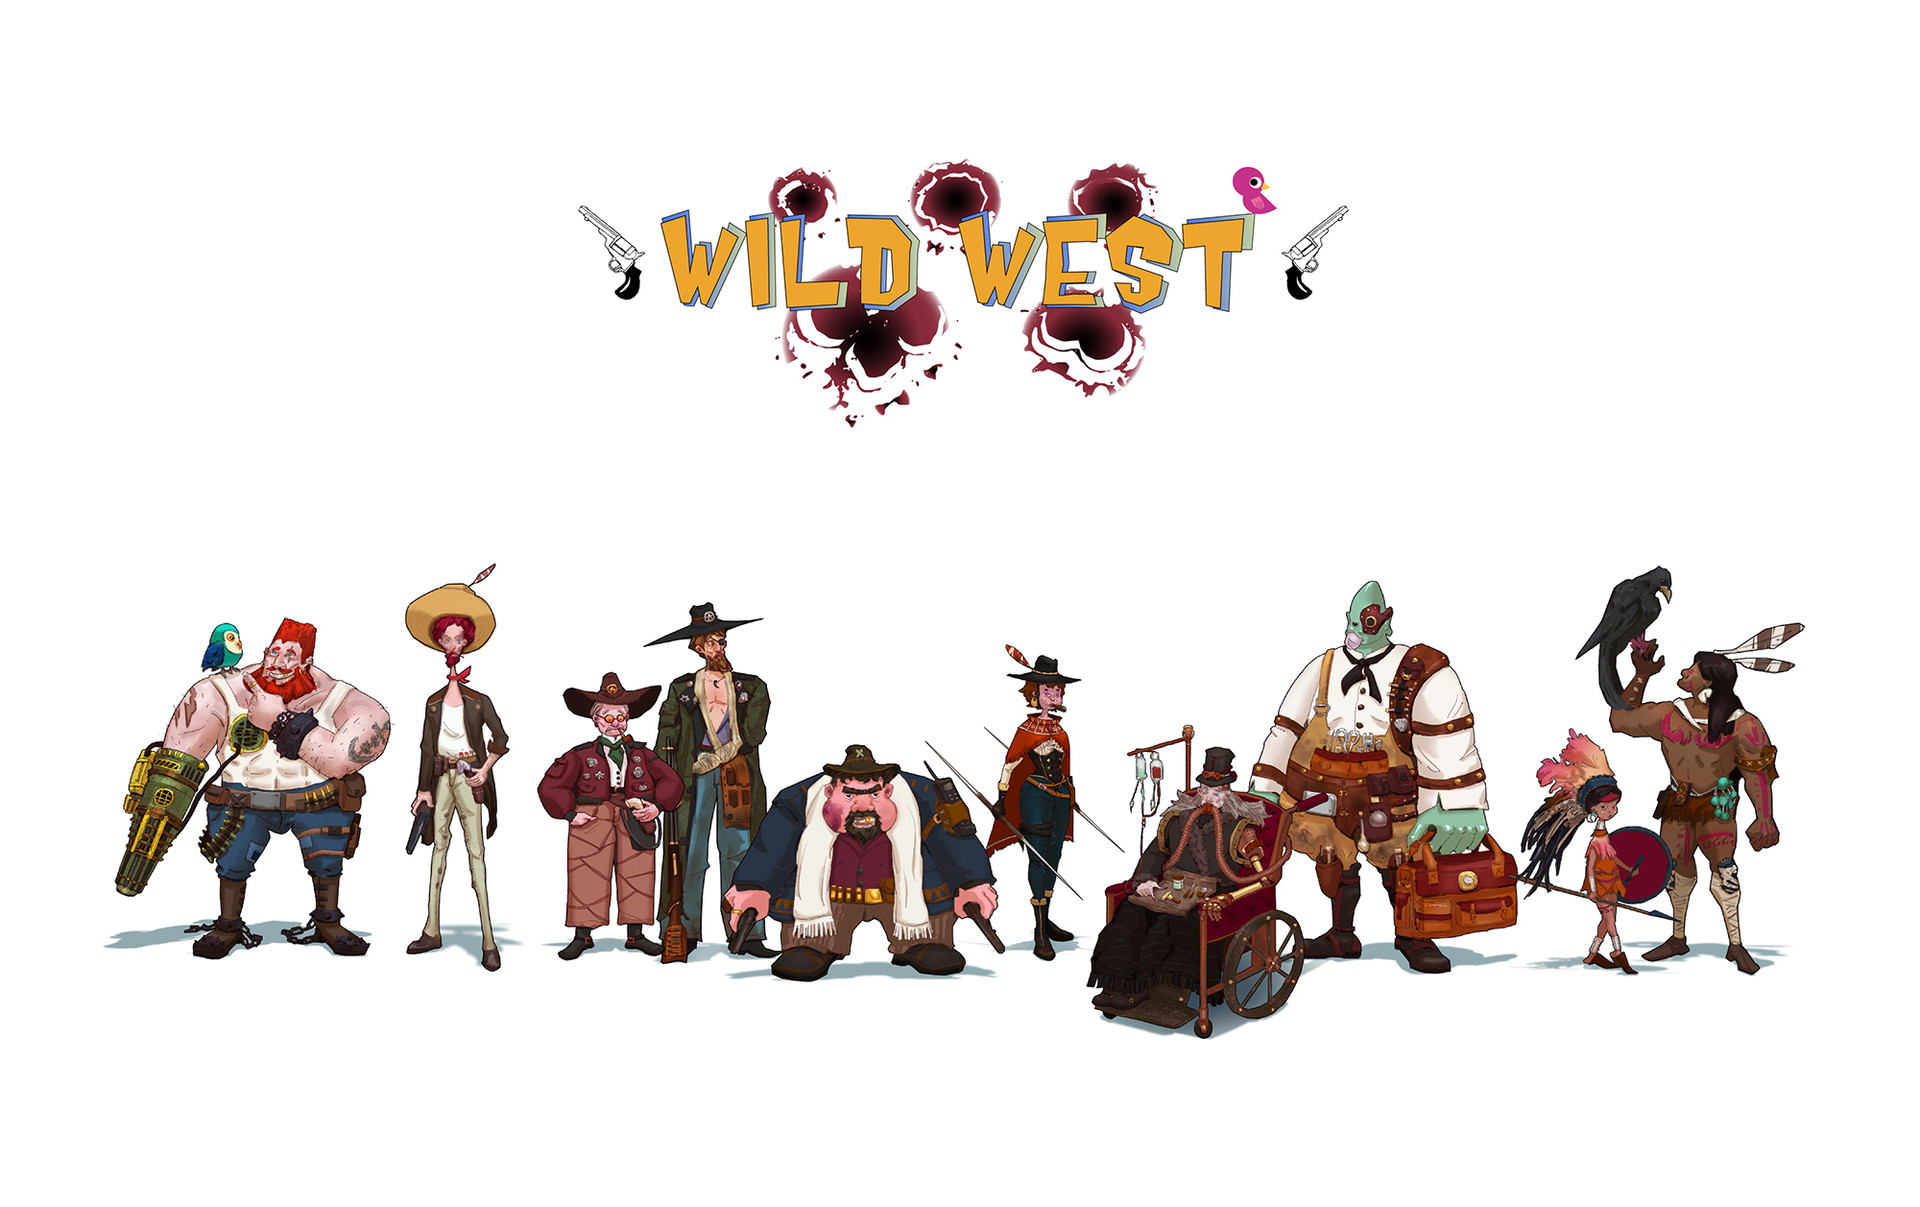 Xiangyu che wild west lineup